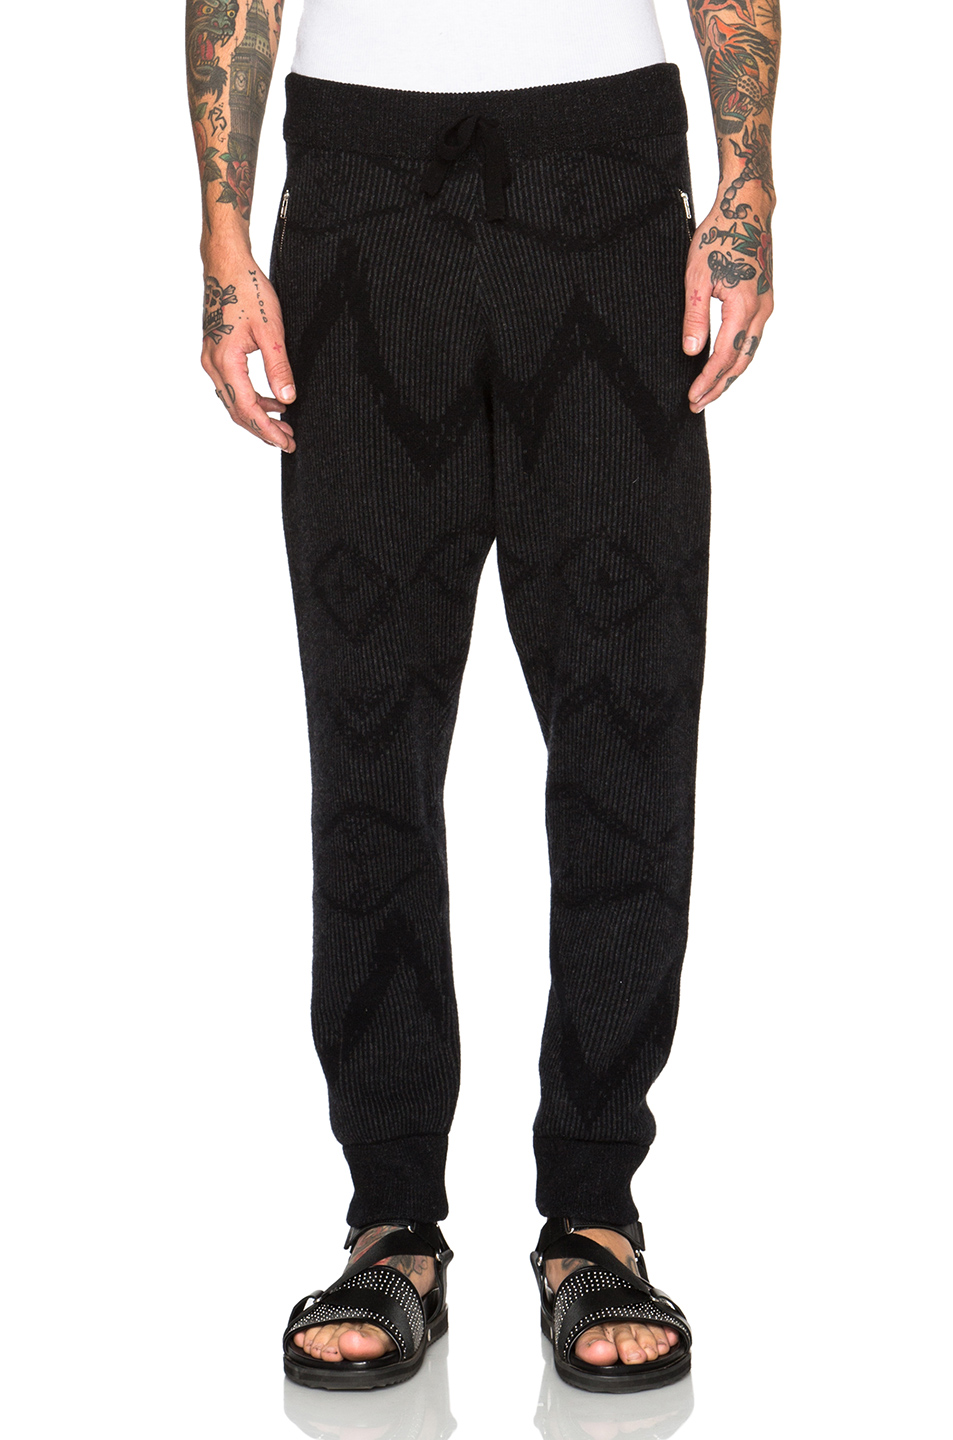 Photo of Baja East Cashmere Ikat Graffiti Sweatpants in Gray,Black - shop Baja East menswear